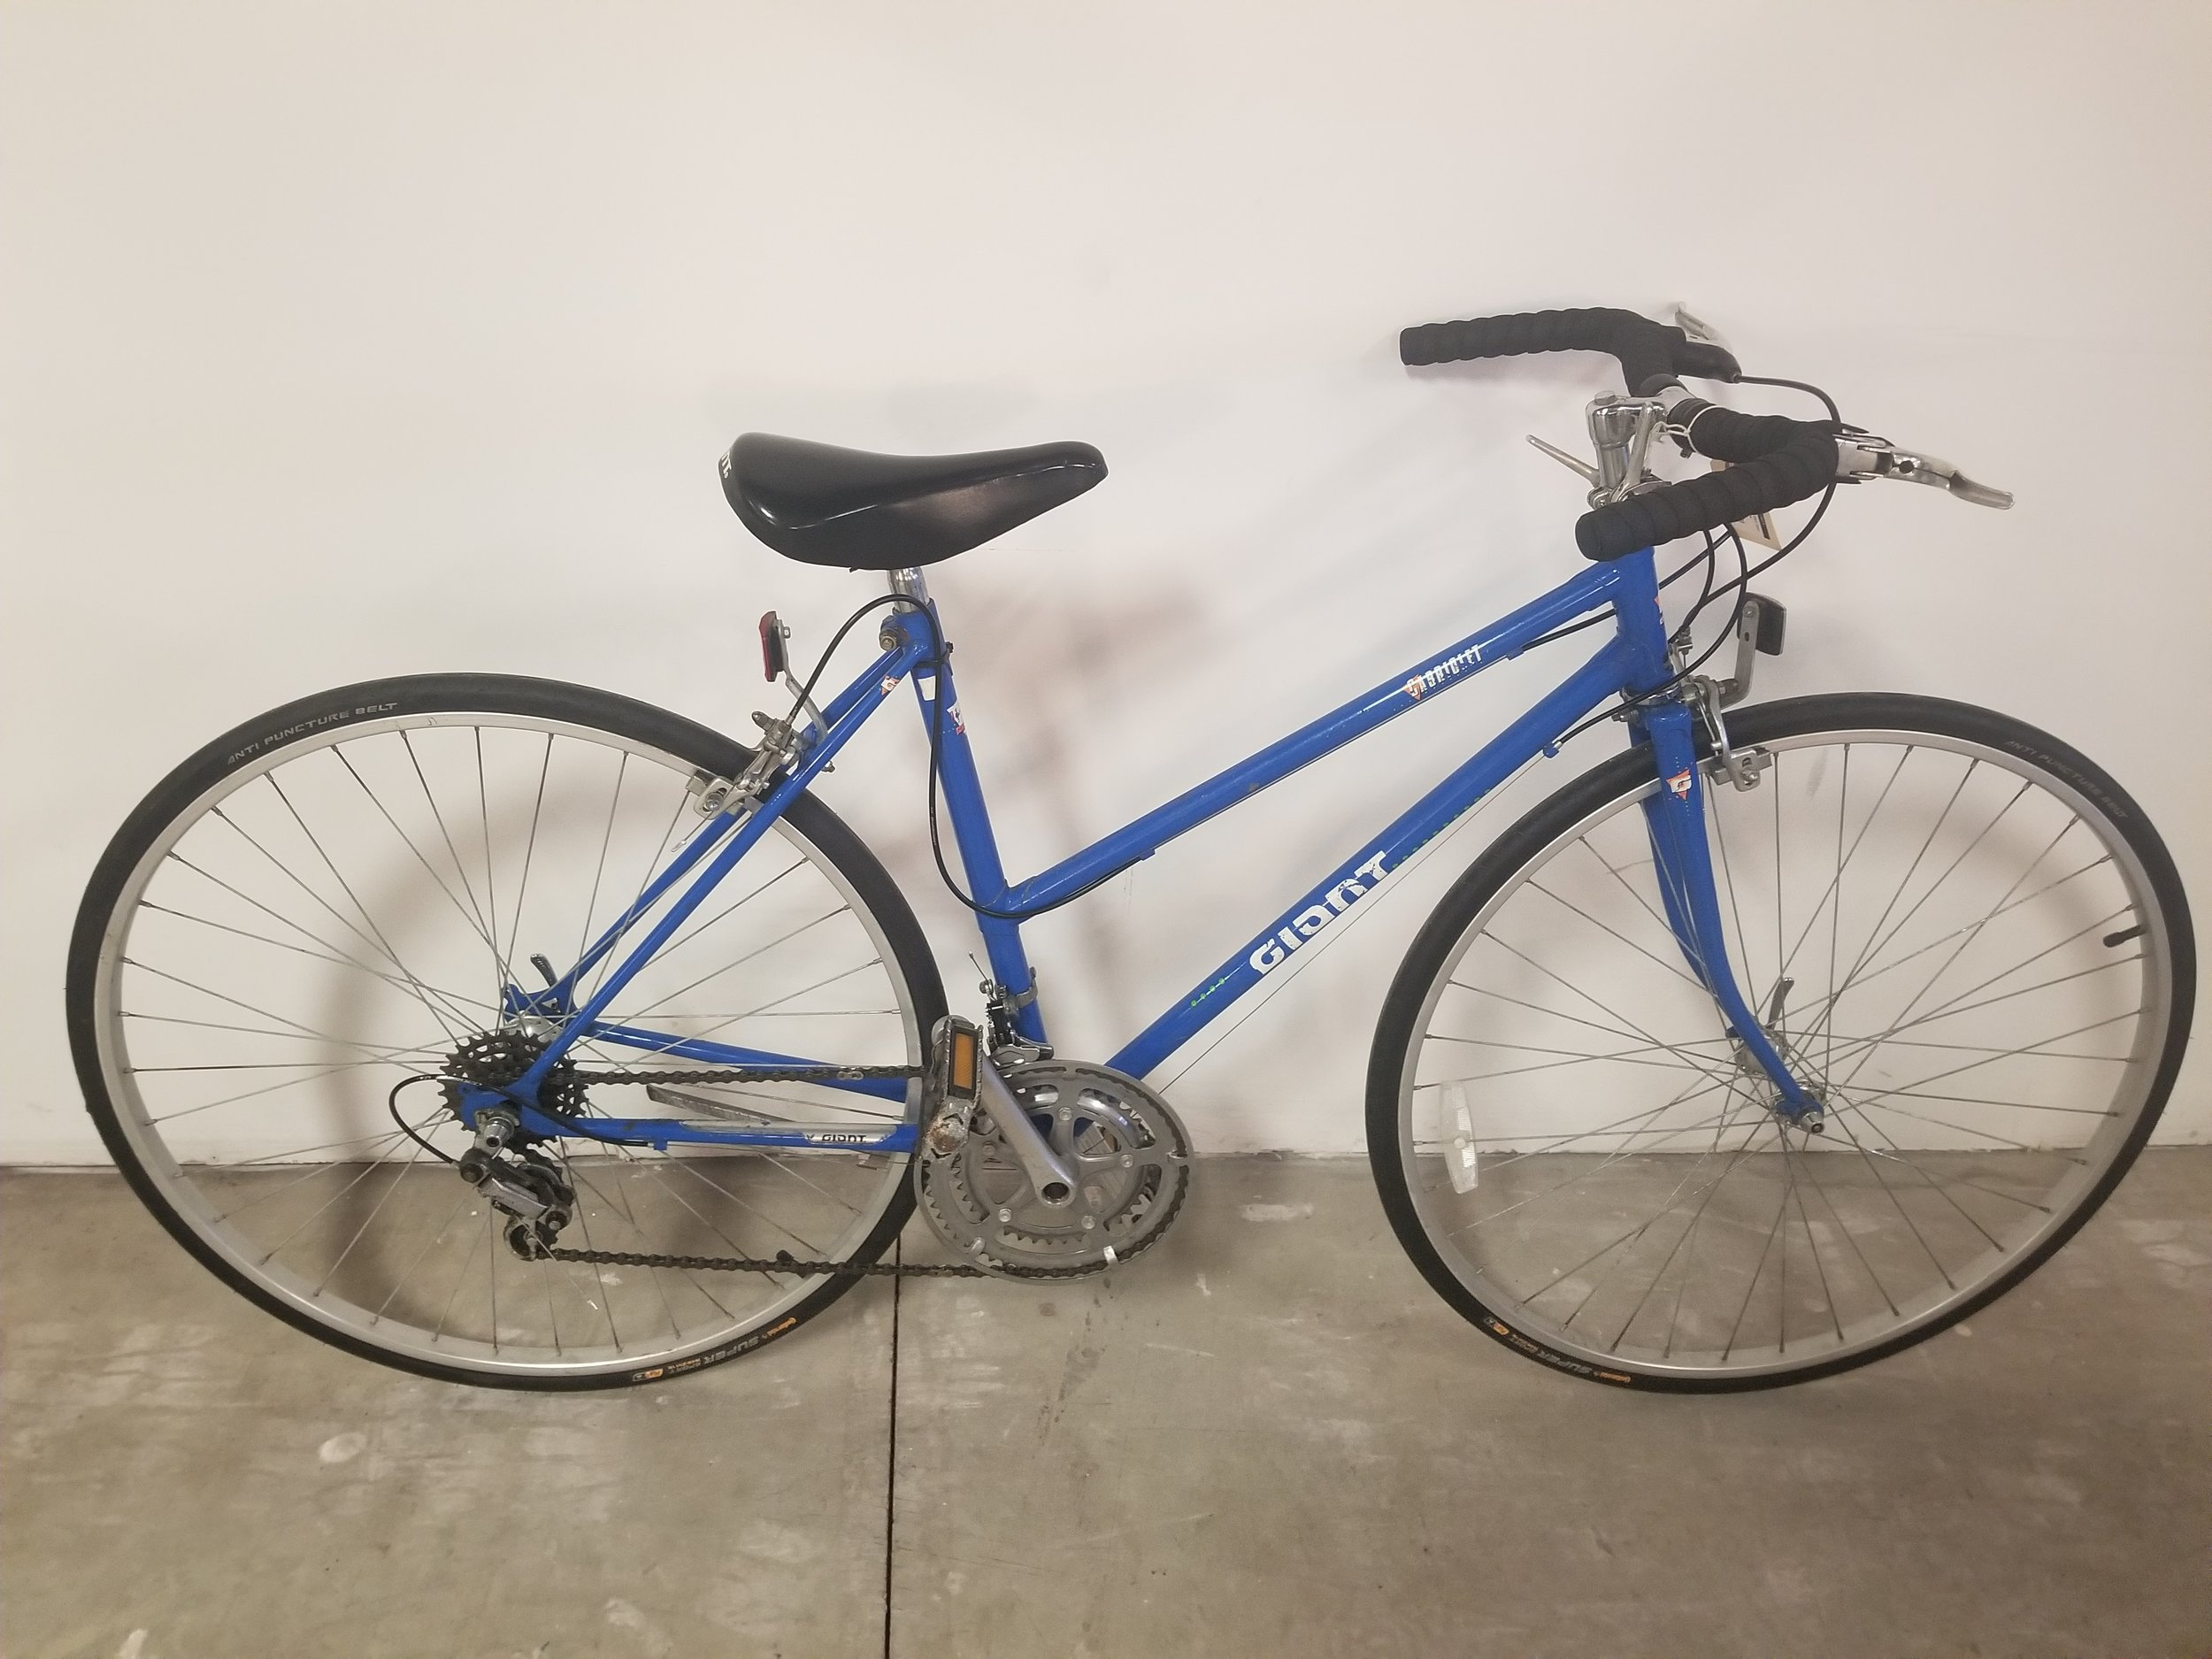 """Giant Cabriolet step-thru 15"""" - Used Bike modified for commuter style flat bars. Fun bike to get around town.$200 (on sale from $225)"""